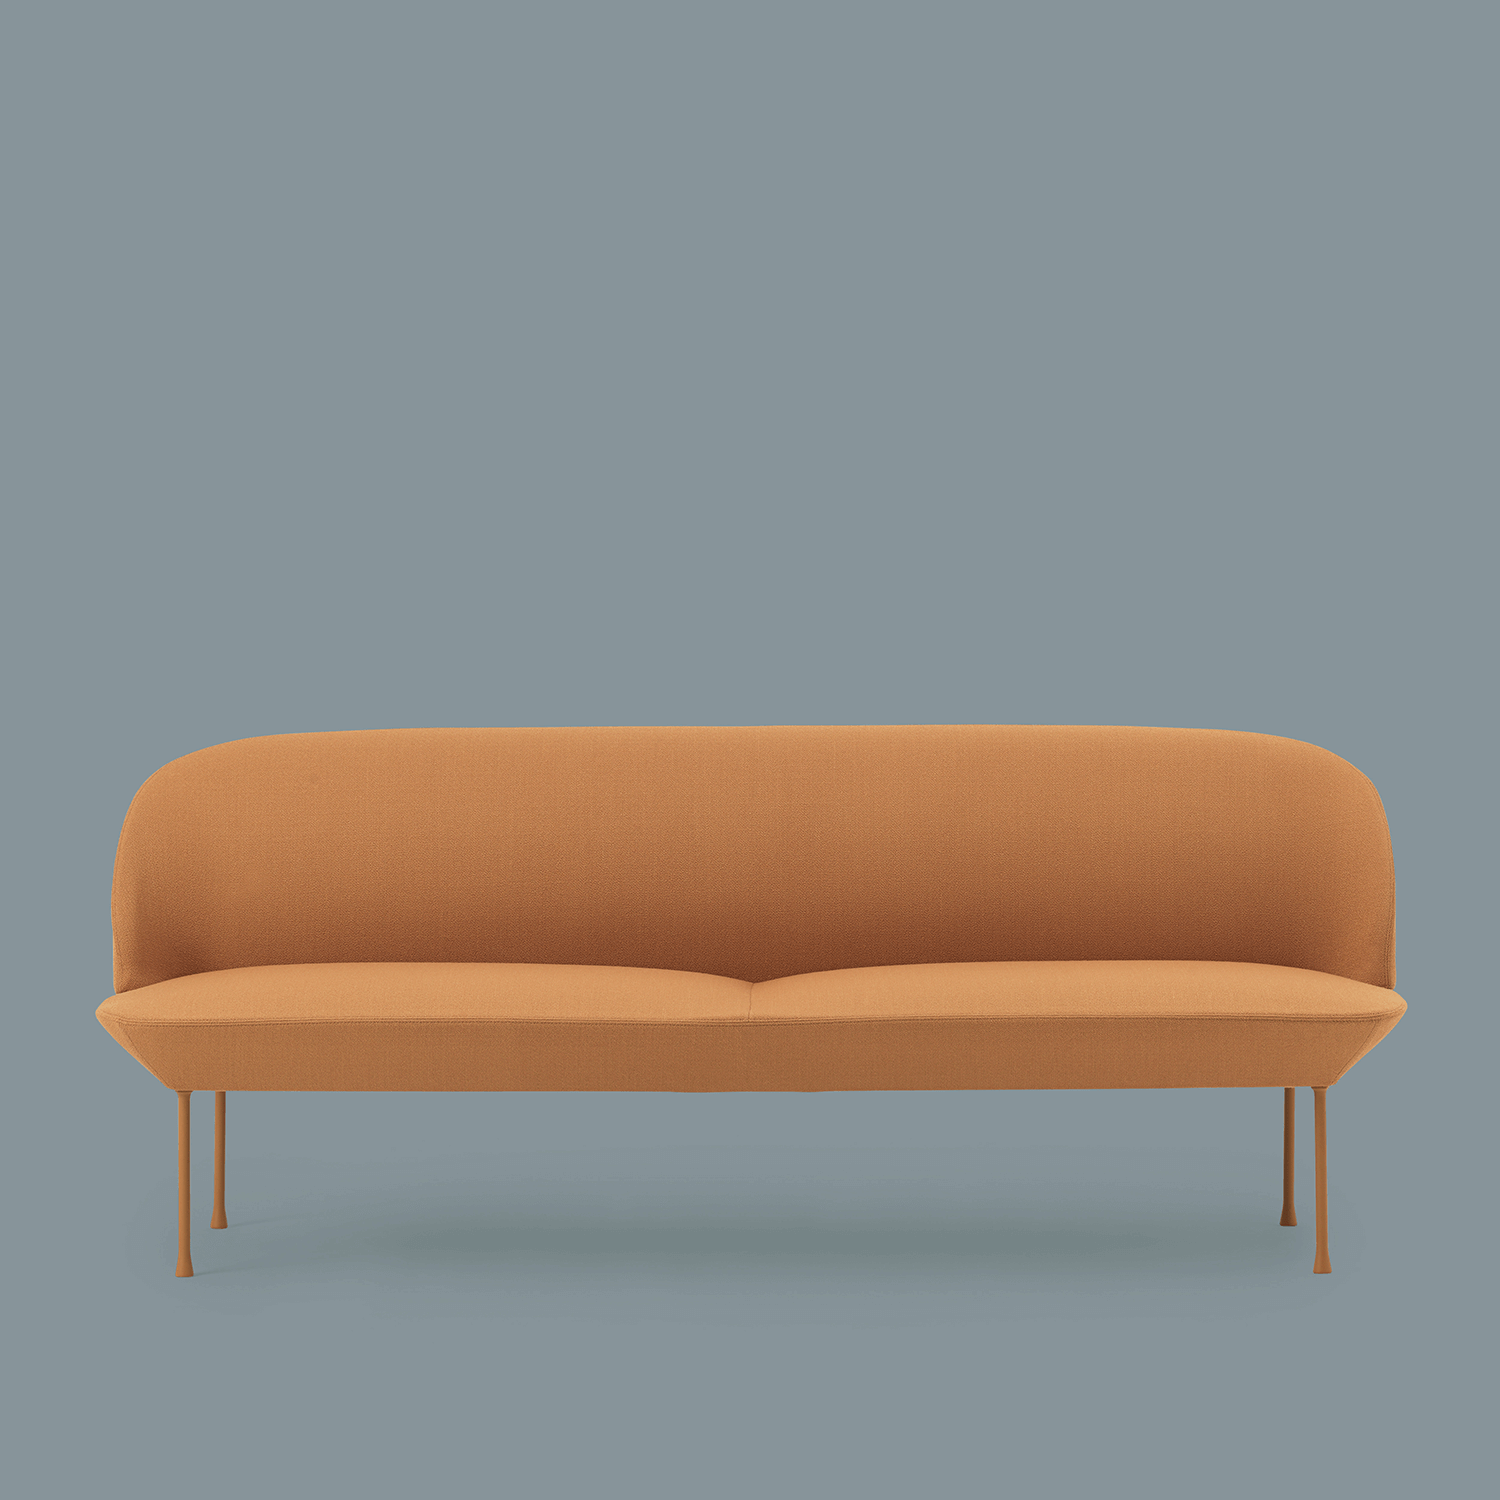 Home Decor Design Inspiration From Muuto The Oslo Sofa Family Unites Geometric Lines With A Light Form For The Refined Comfortable Lounging Experience Availa I 2020